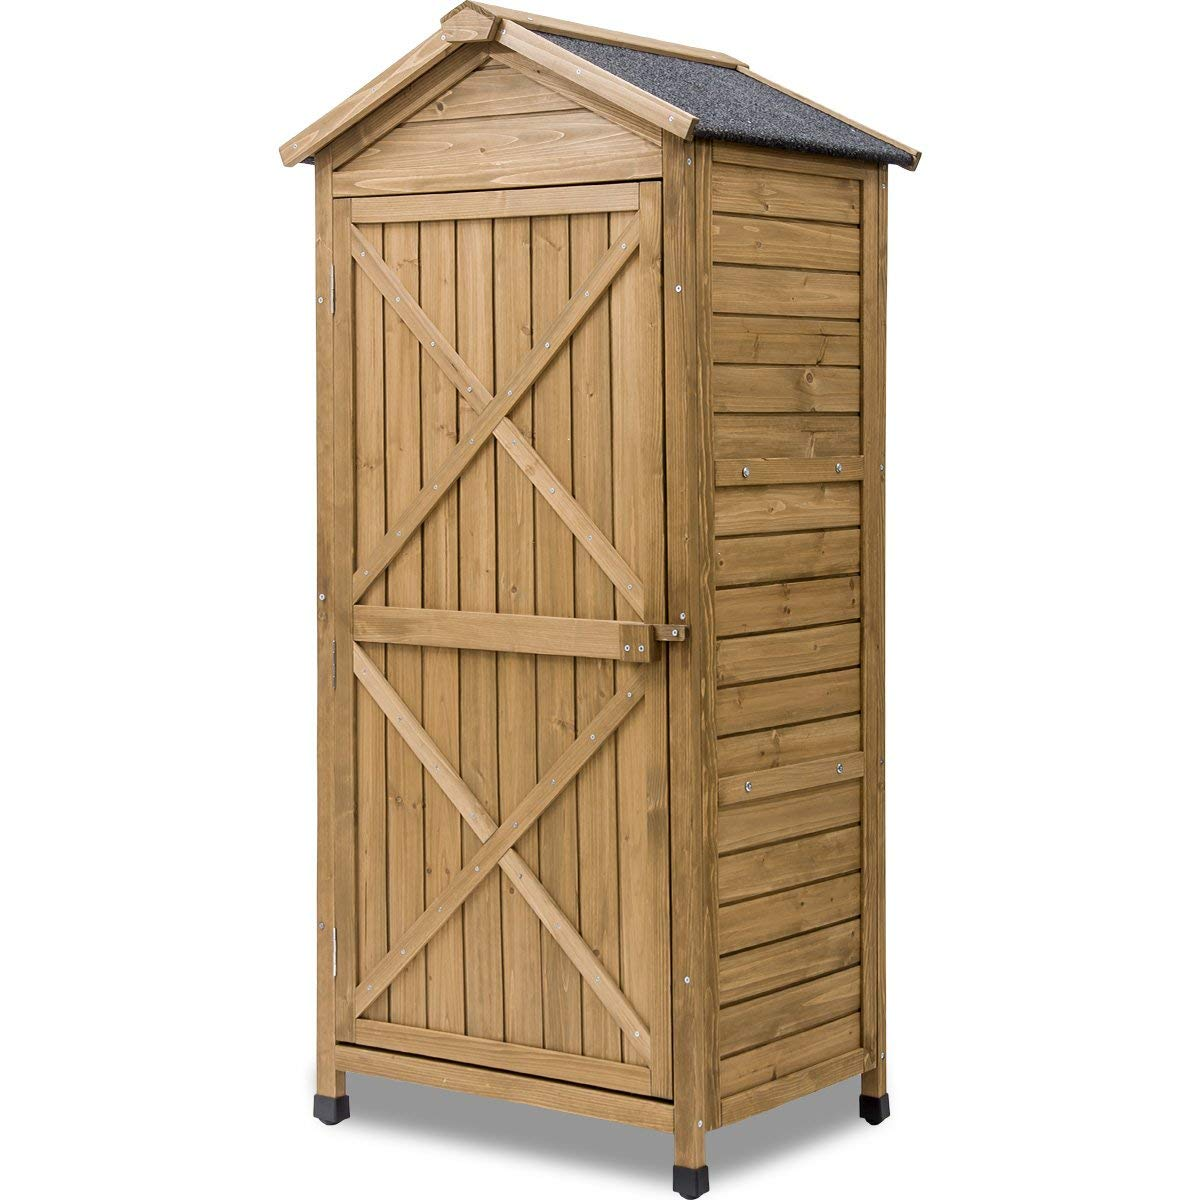 Get Quotations Leisure Zone Outdoor Wooden Garden Shed Lockers Fir Wood With Workstation Design 2